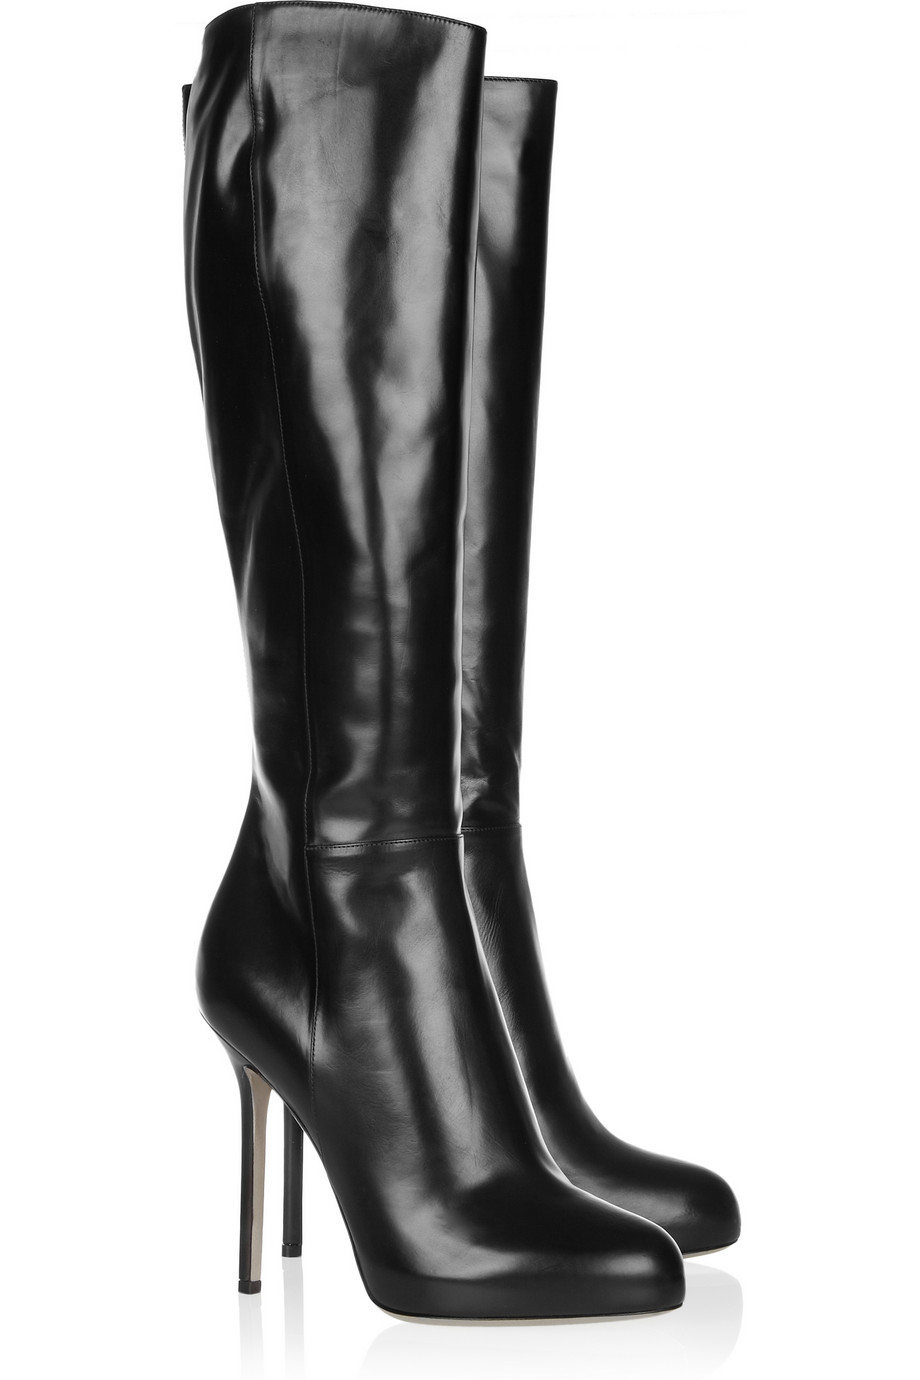 Black Leather Boots For Women 4A1WTLre